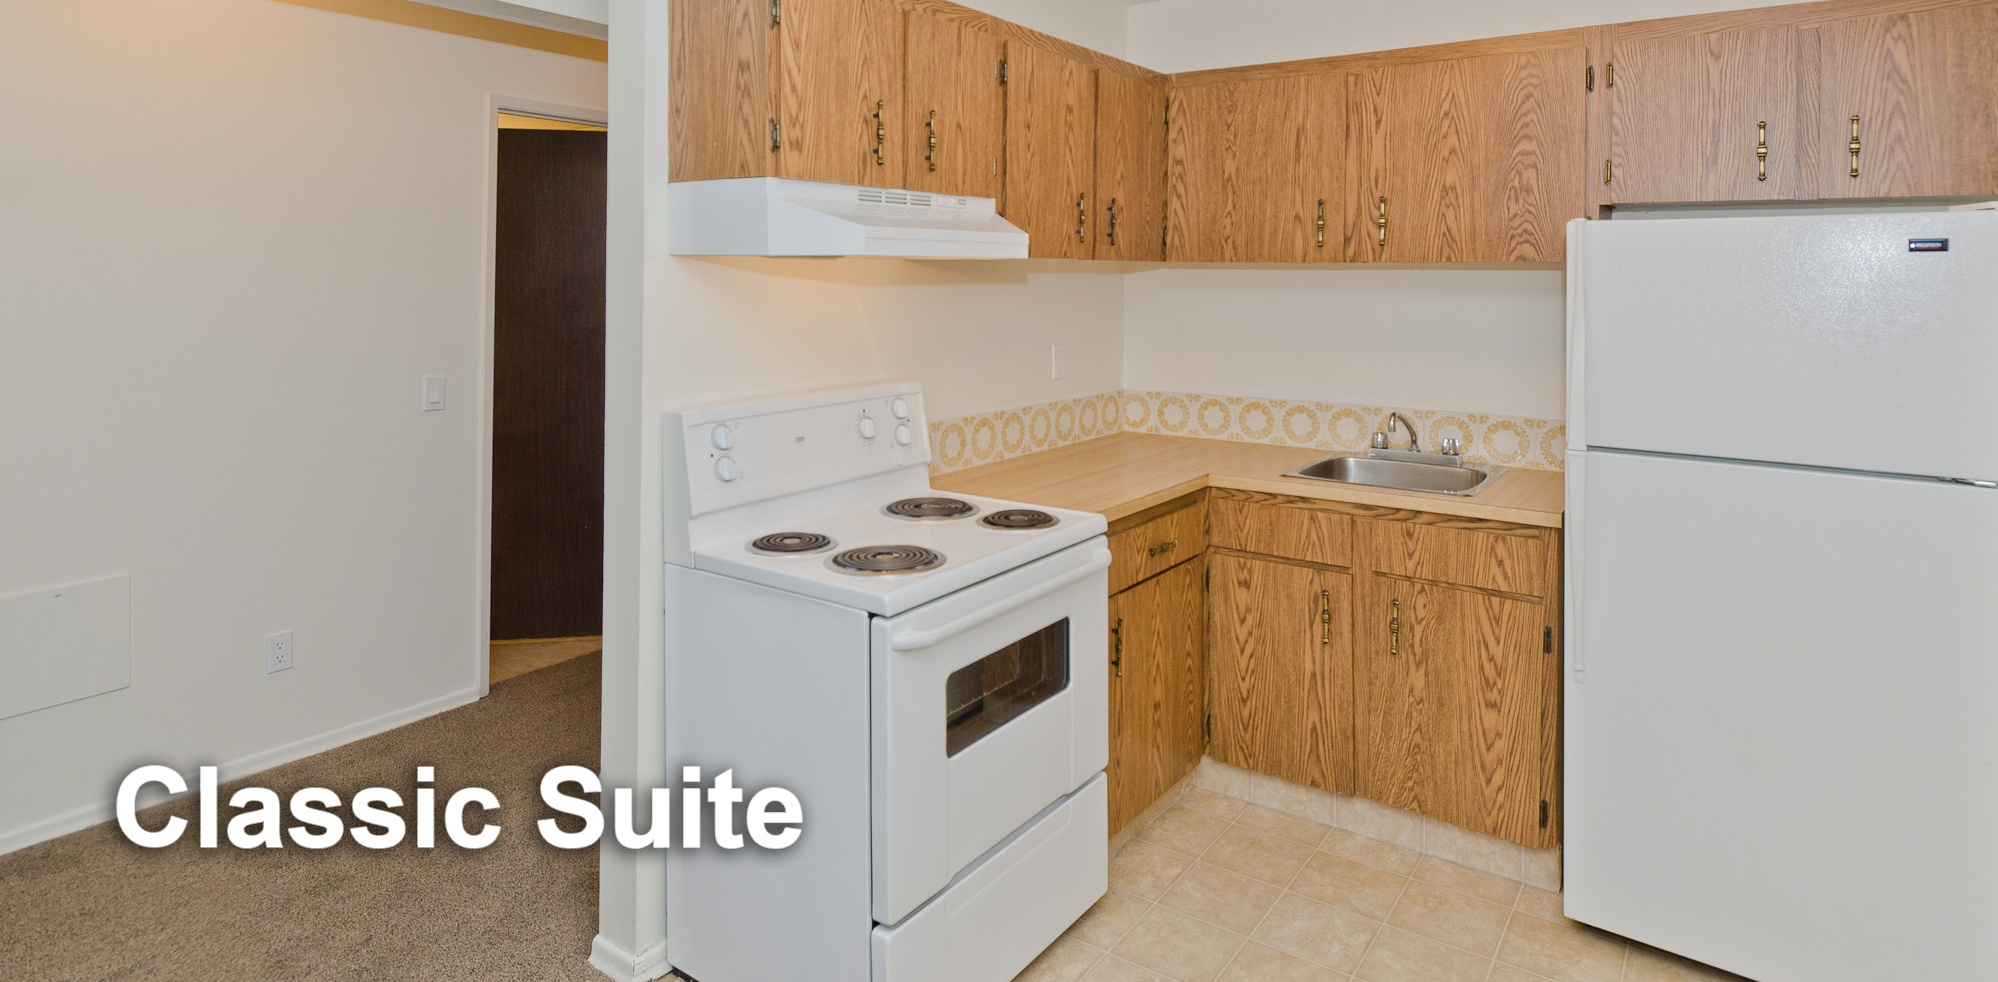 3607 49 St. NW in Calgary, AB